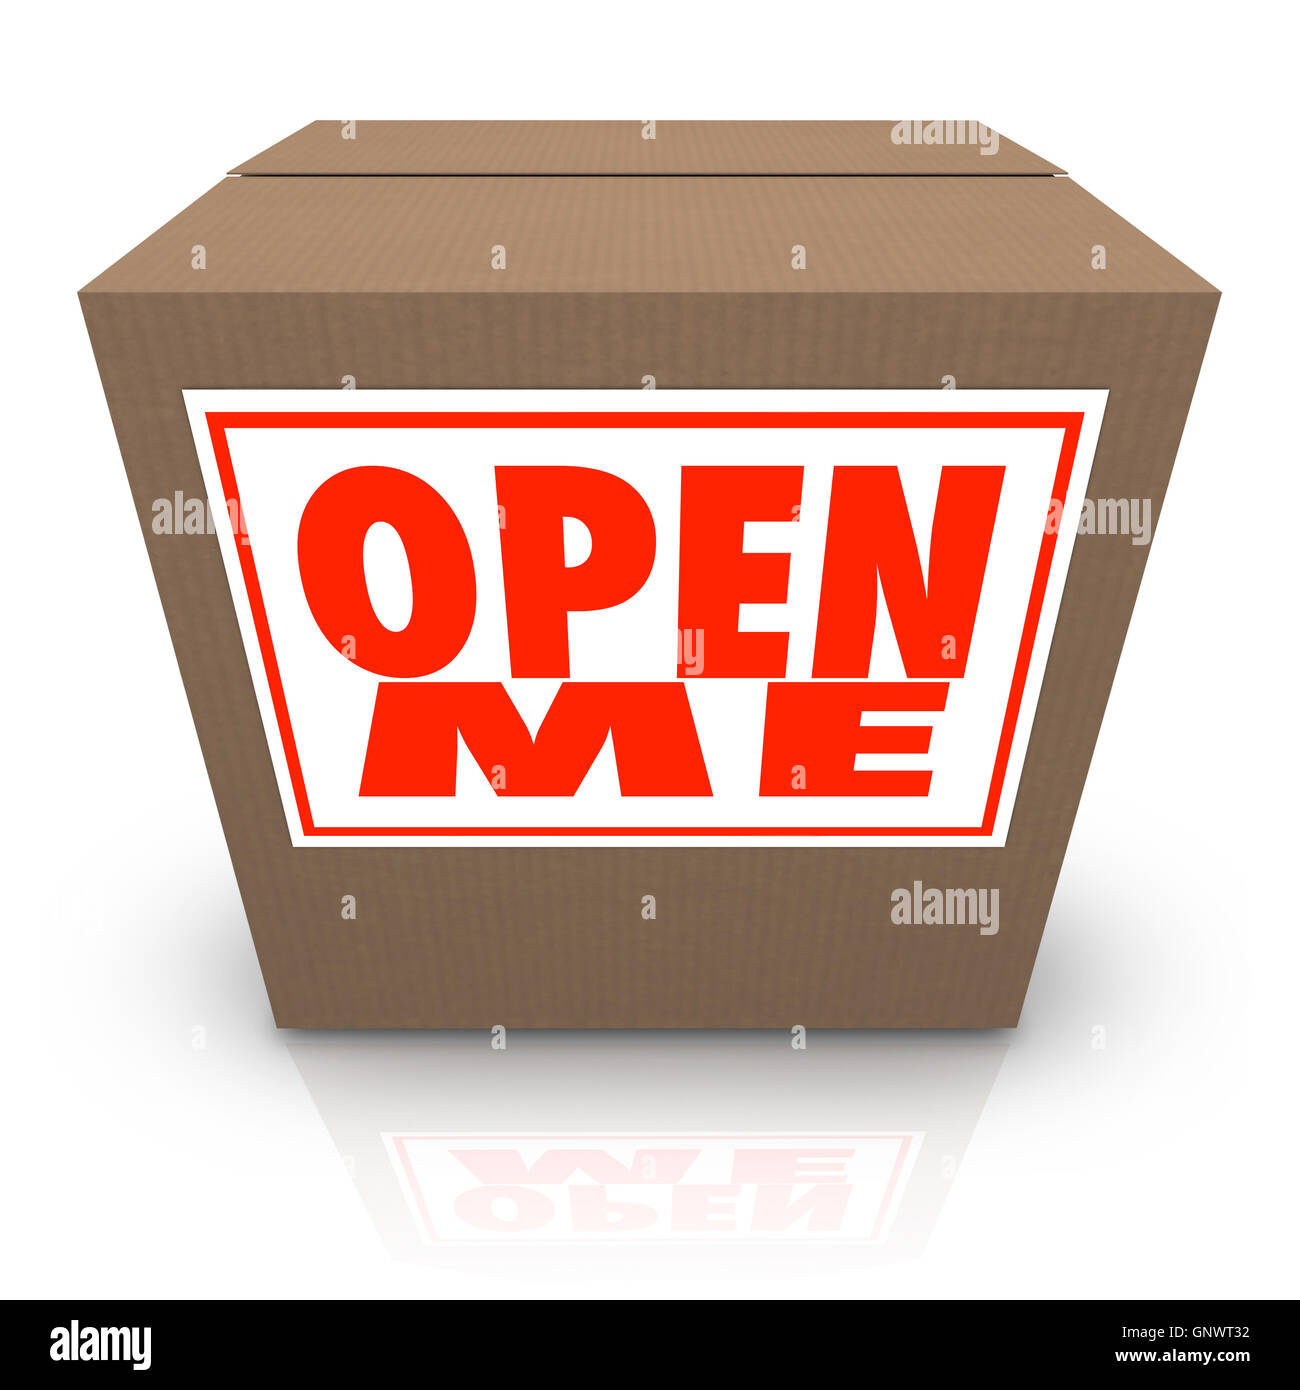 open me label on cardboard box mystery present package stock photo